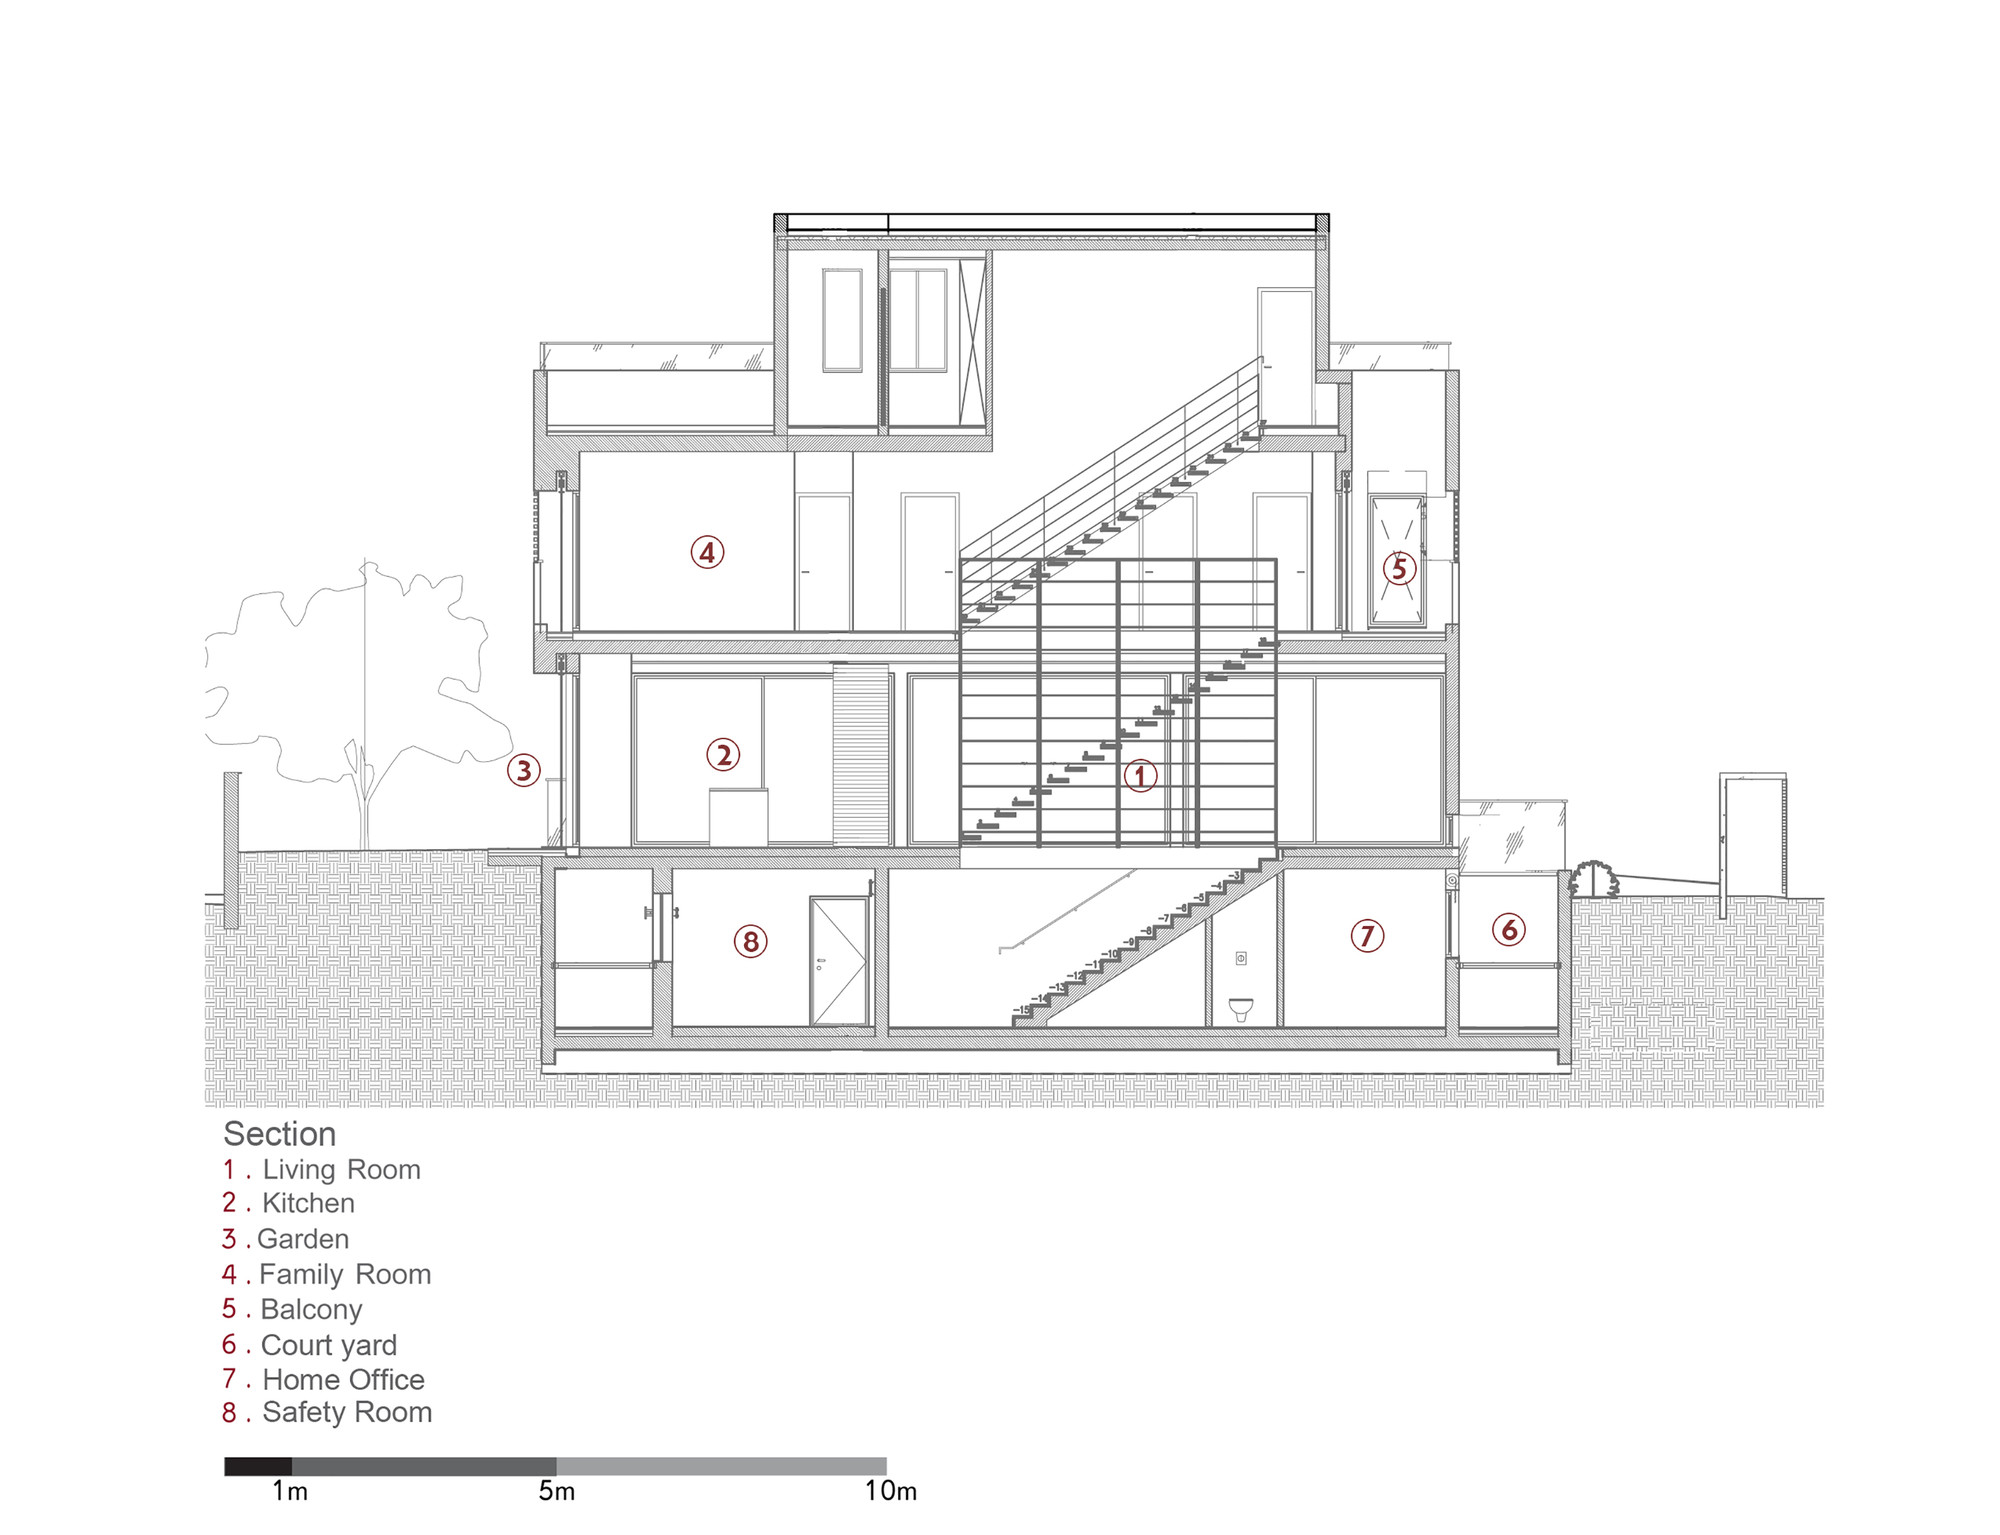 Sectional View Of A Building